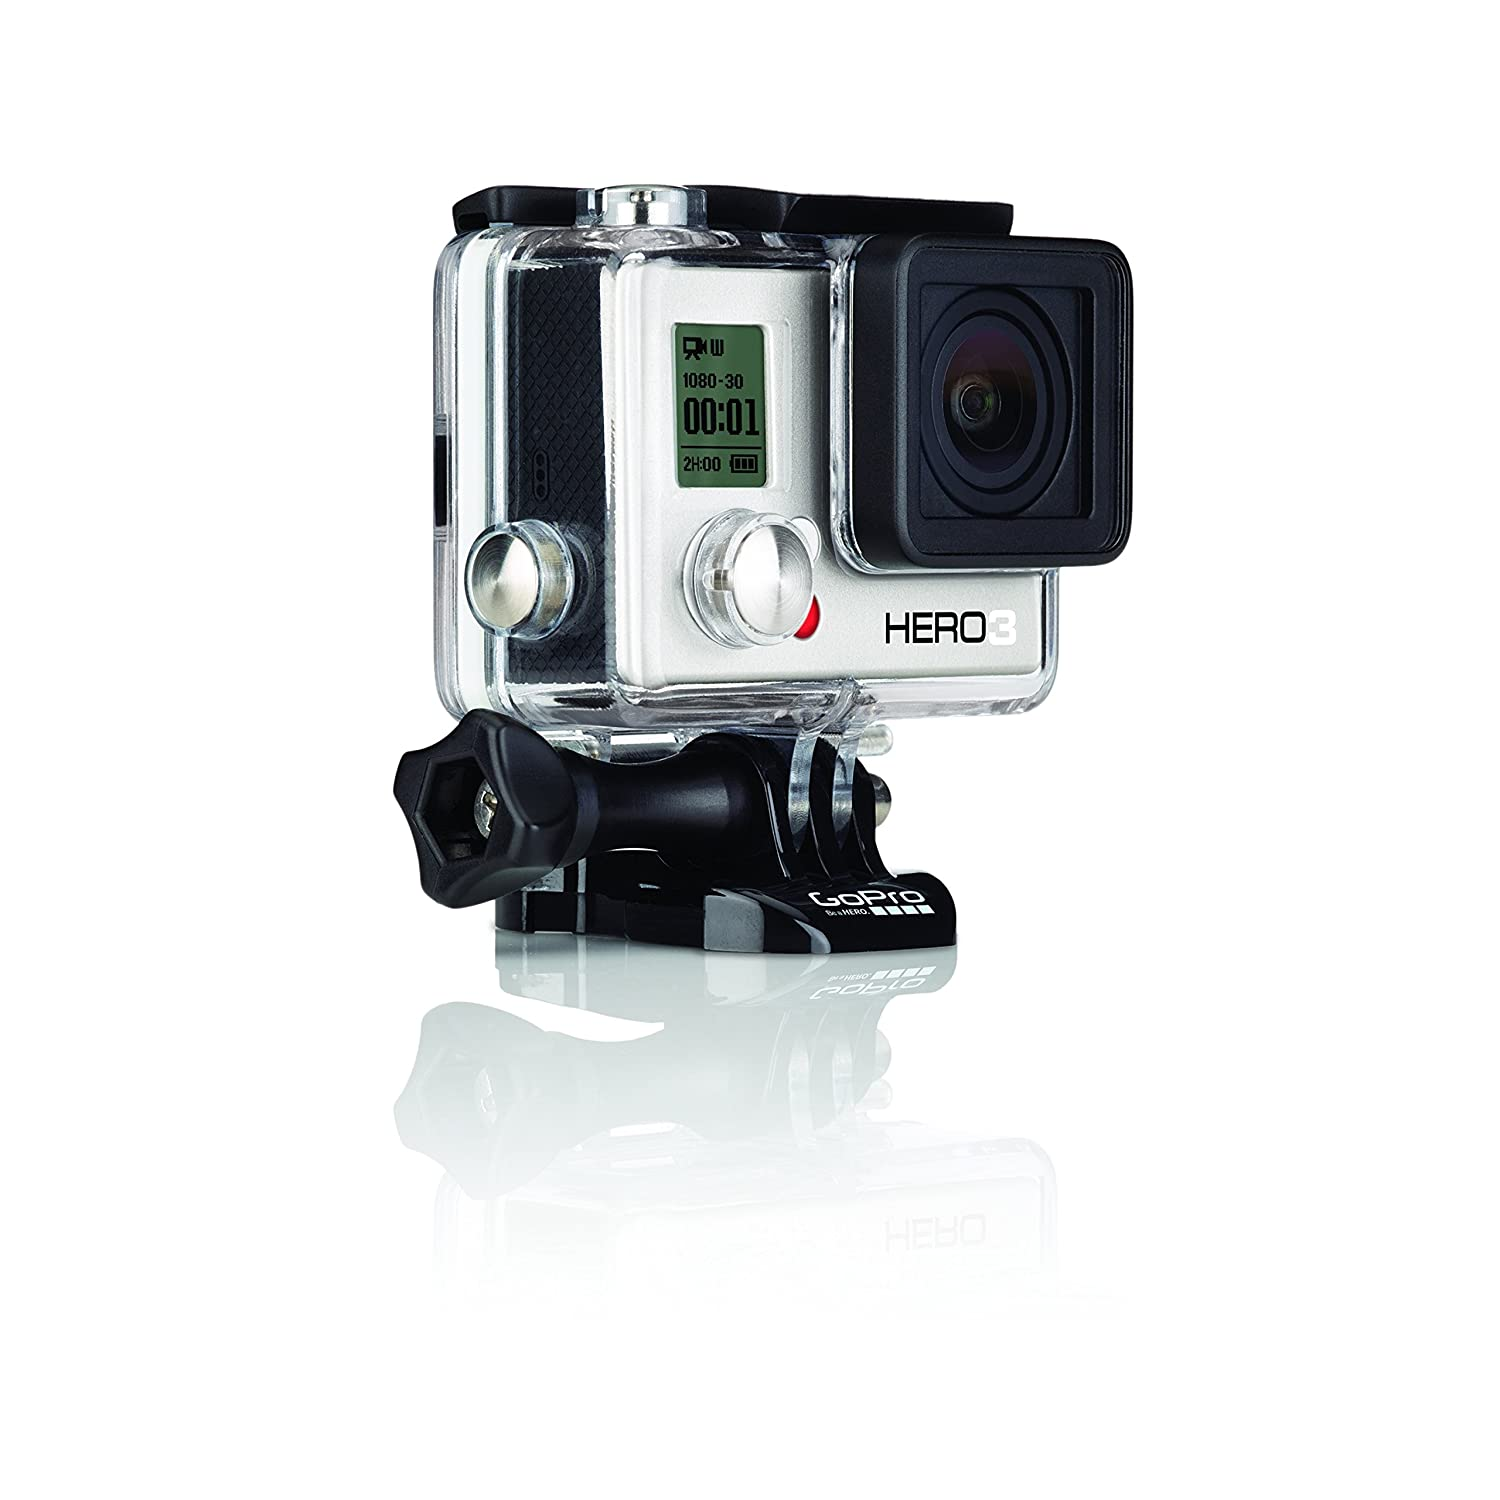 Amazon.com : GoPro HERO3: White Edition - 131'/ 40m Waterproof Housing :  Camera & Photo